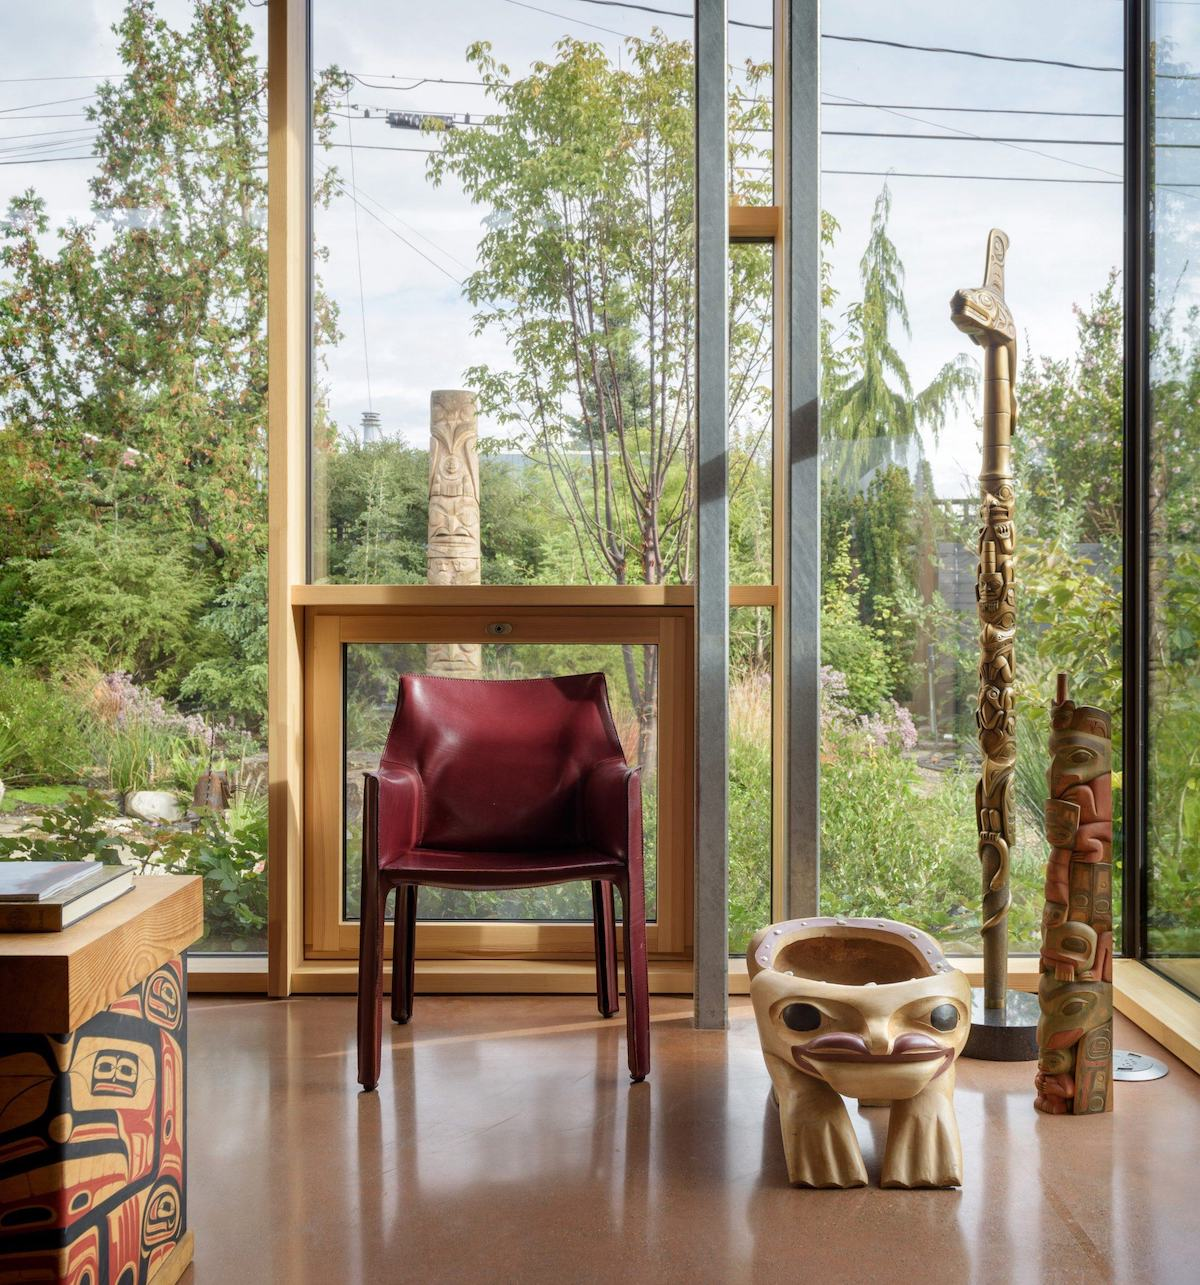 Architects Design a Net-Zero Nature Retreat in Seattle Suburb